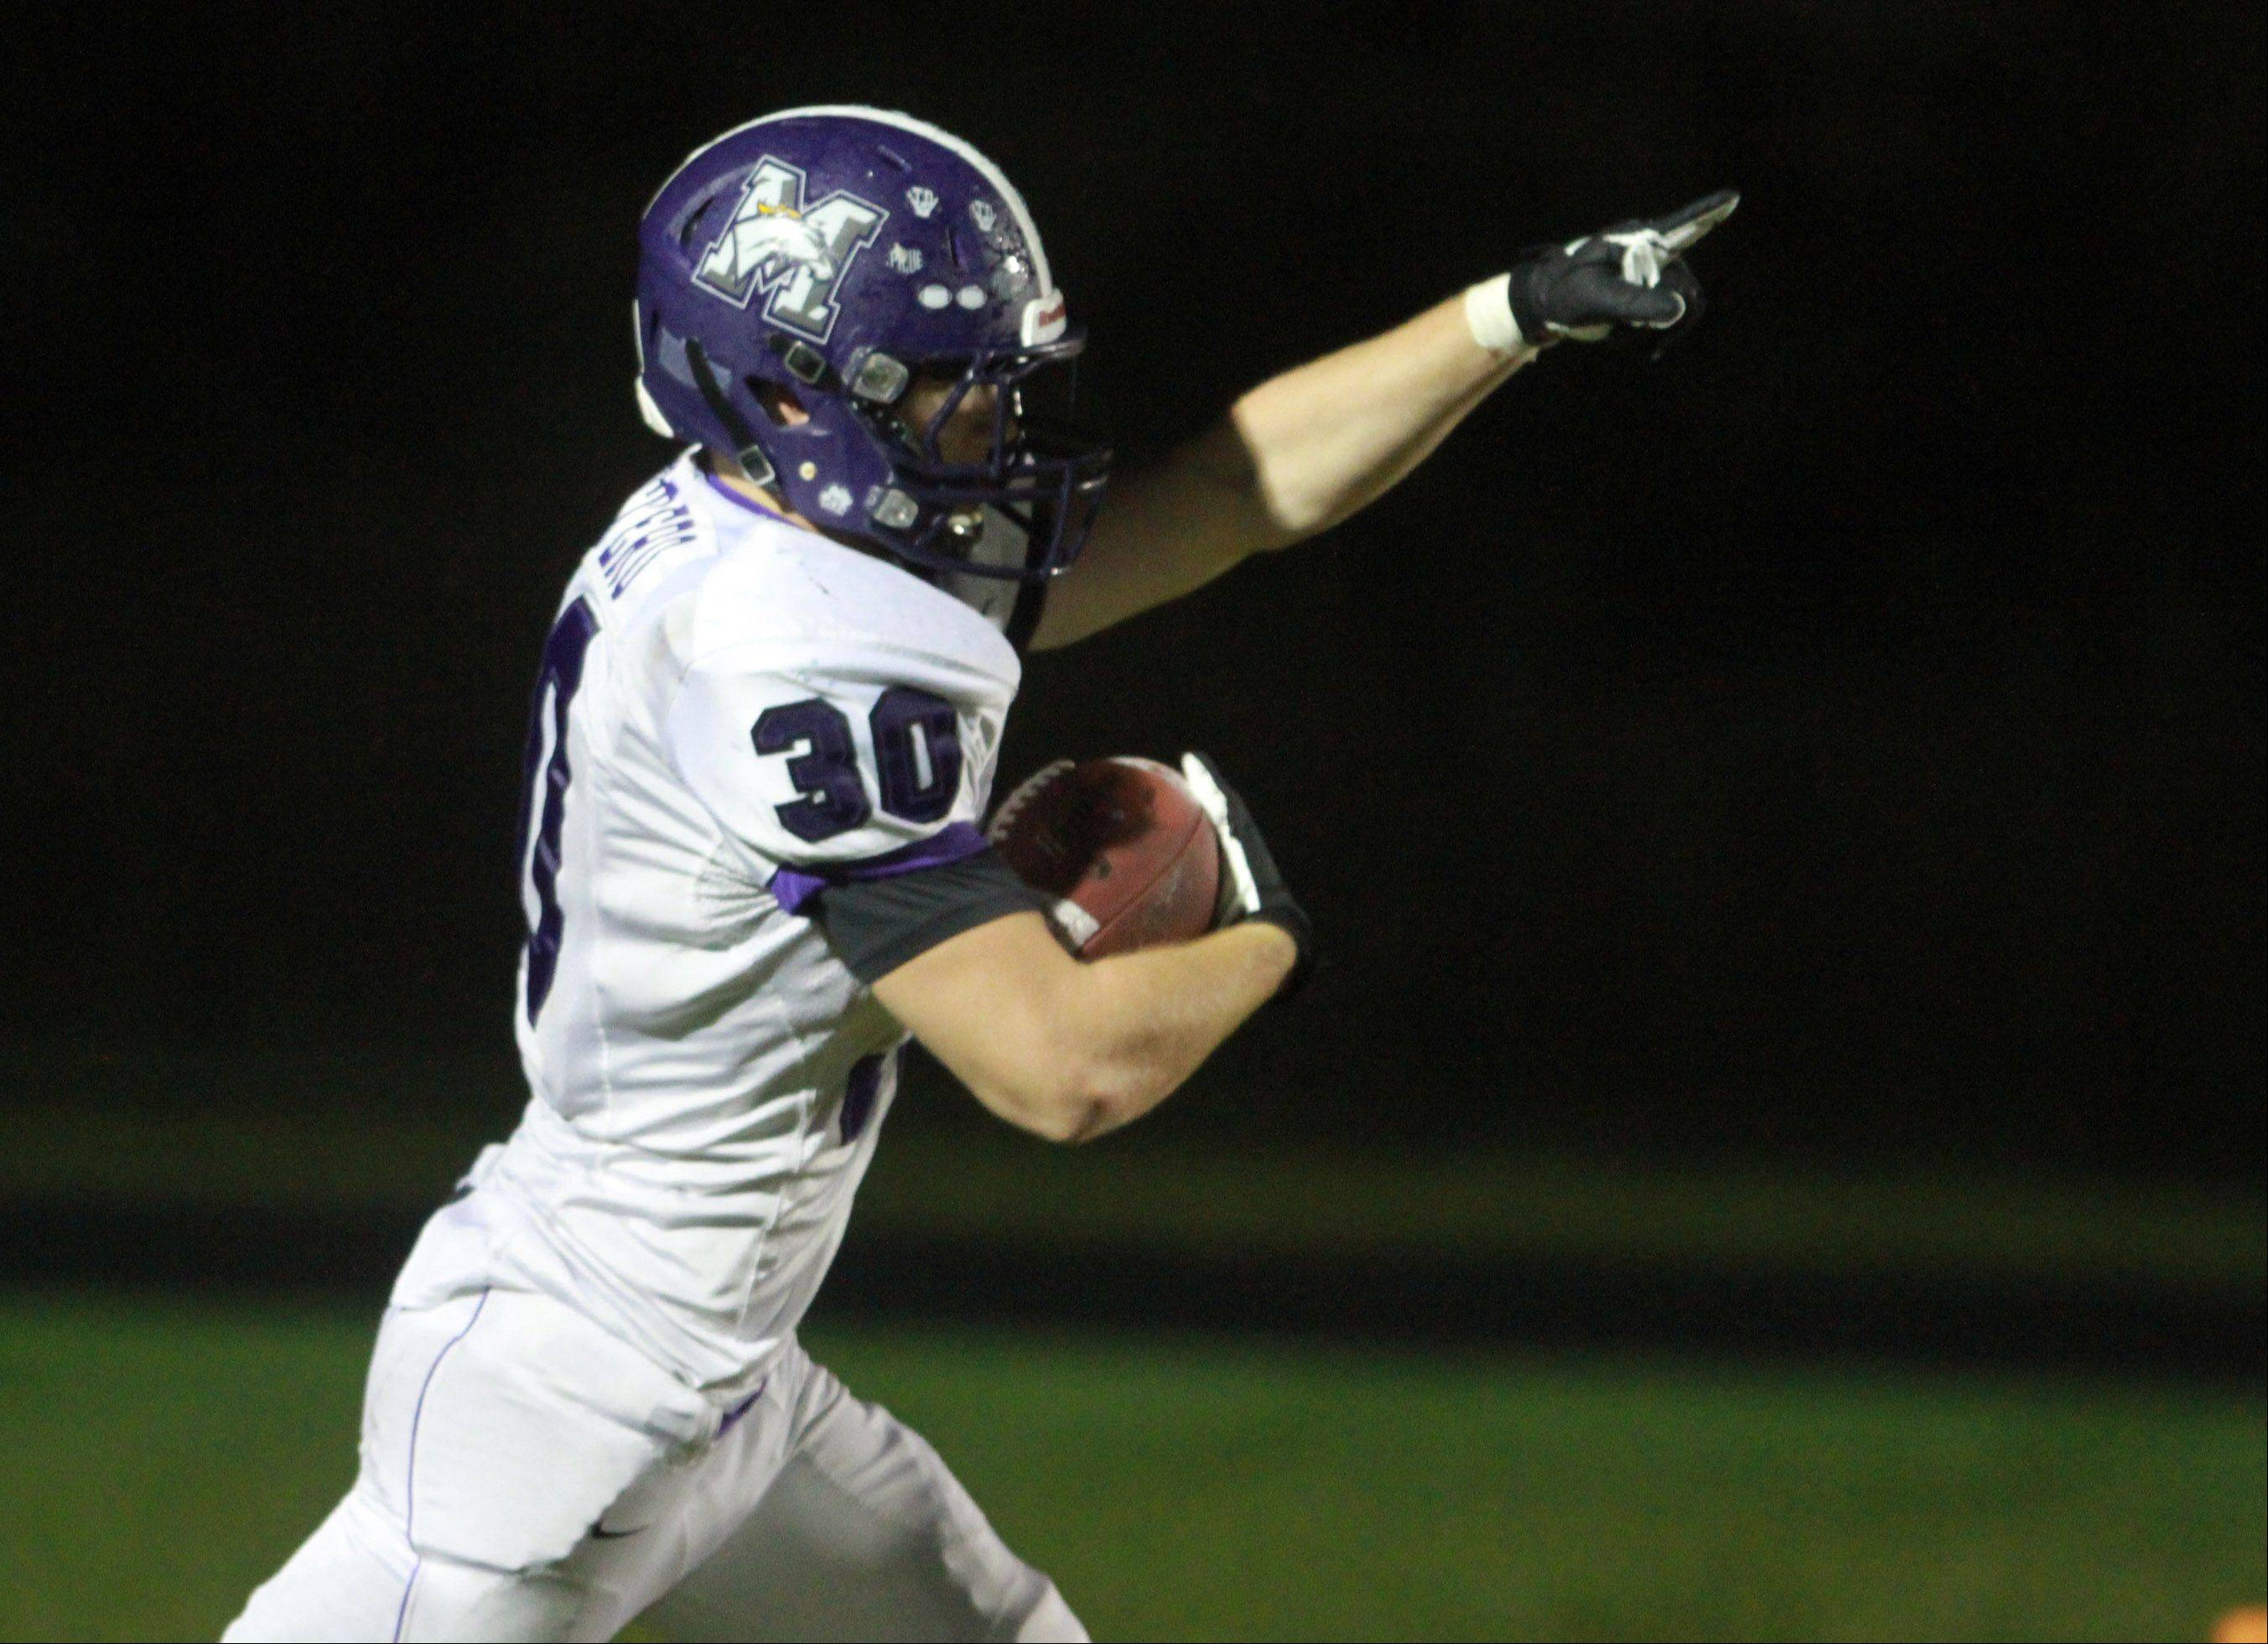 Rolling Meadows Kevin Montero celebrates scoring a touchdown against Grayslake North in Class 6A playoff action at Grayslake North on Friday.